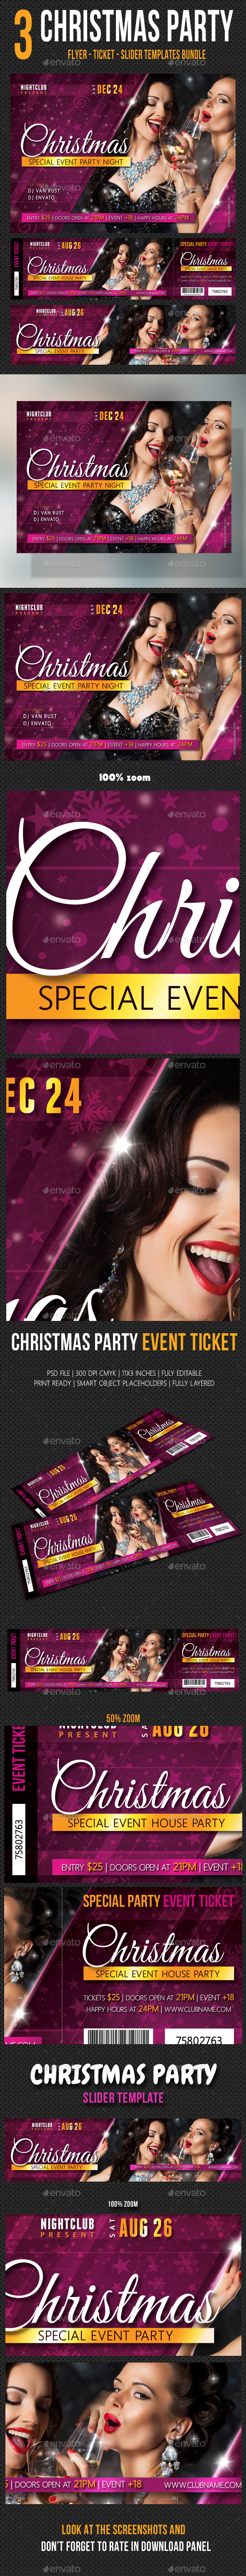 3 in 1 Christmas Party Flyer Ticket Slider - Holidays Events